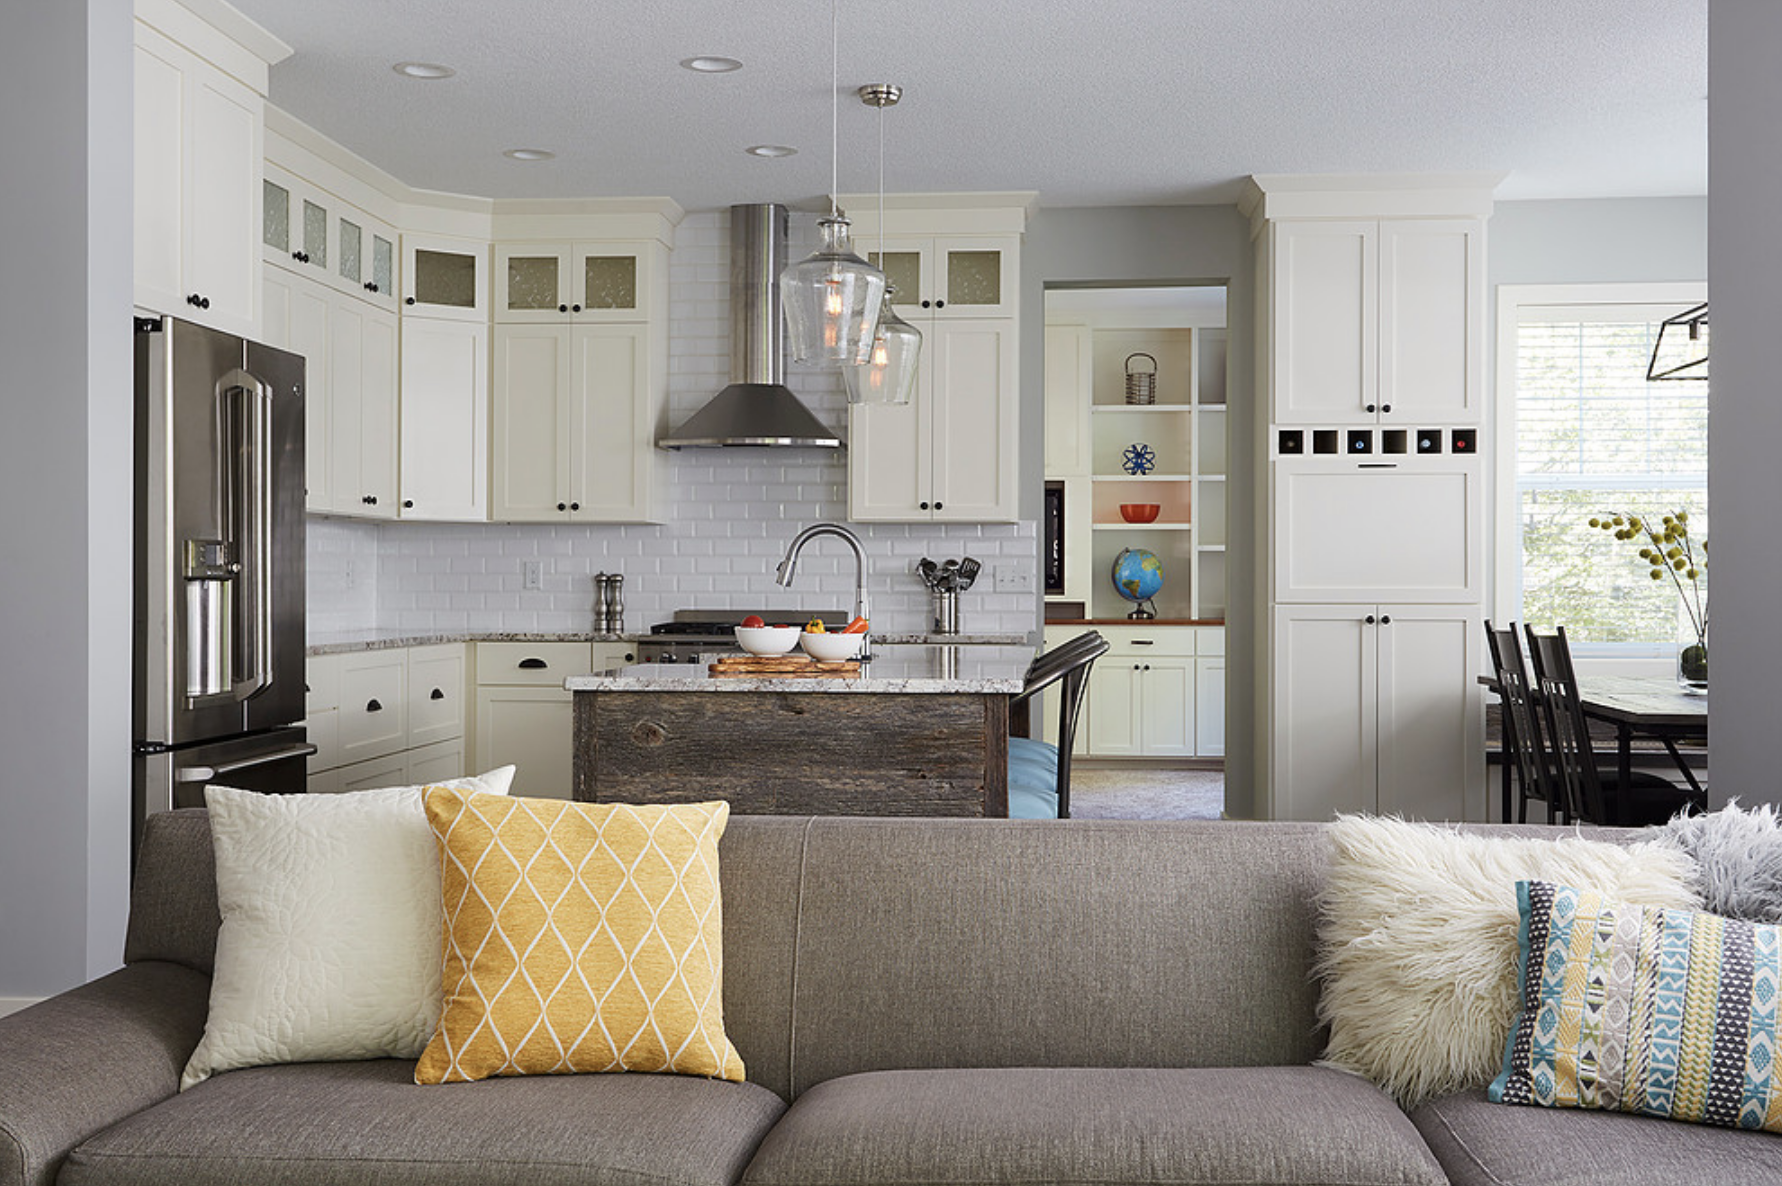 A focus on lighter hues in this newly remodeled kitchen helped the already-open layout feel even more welcoming and spacious.